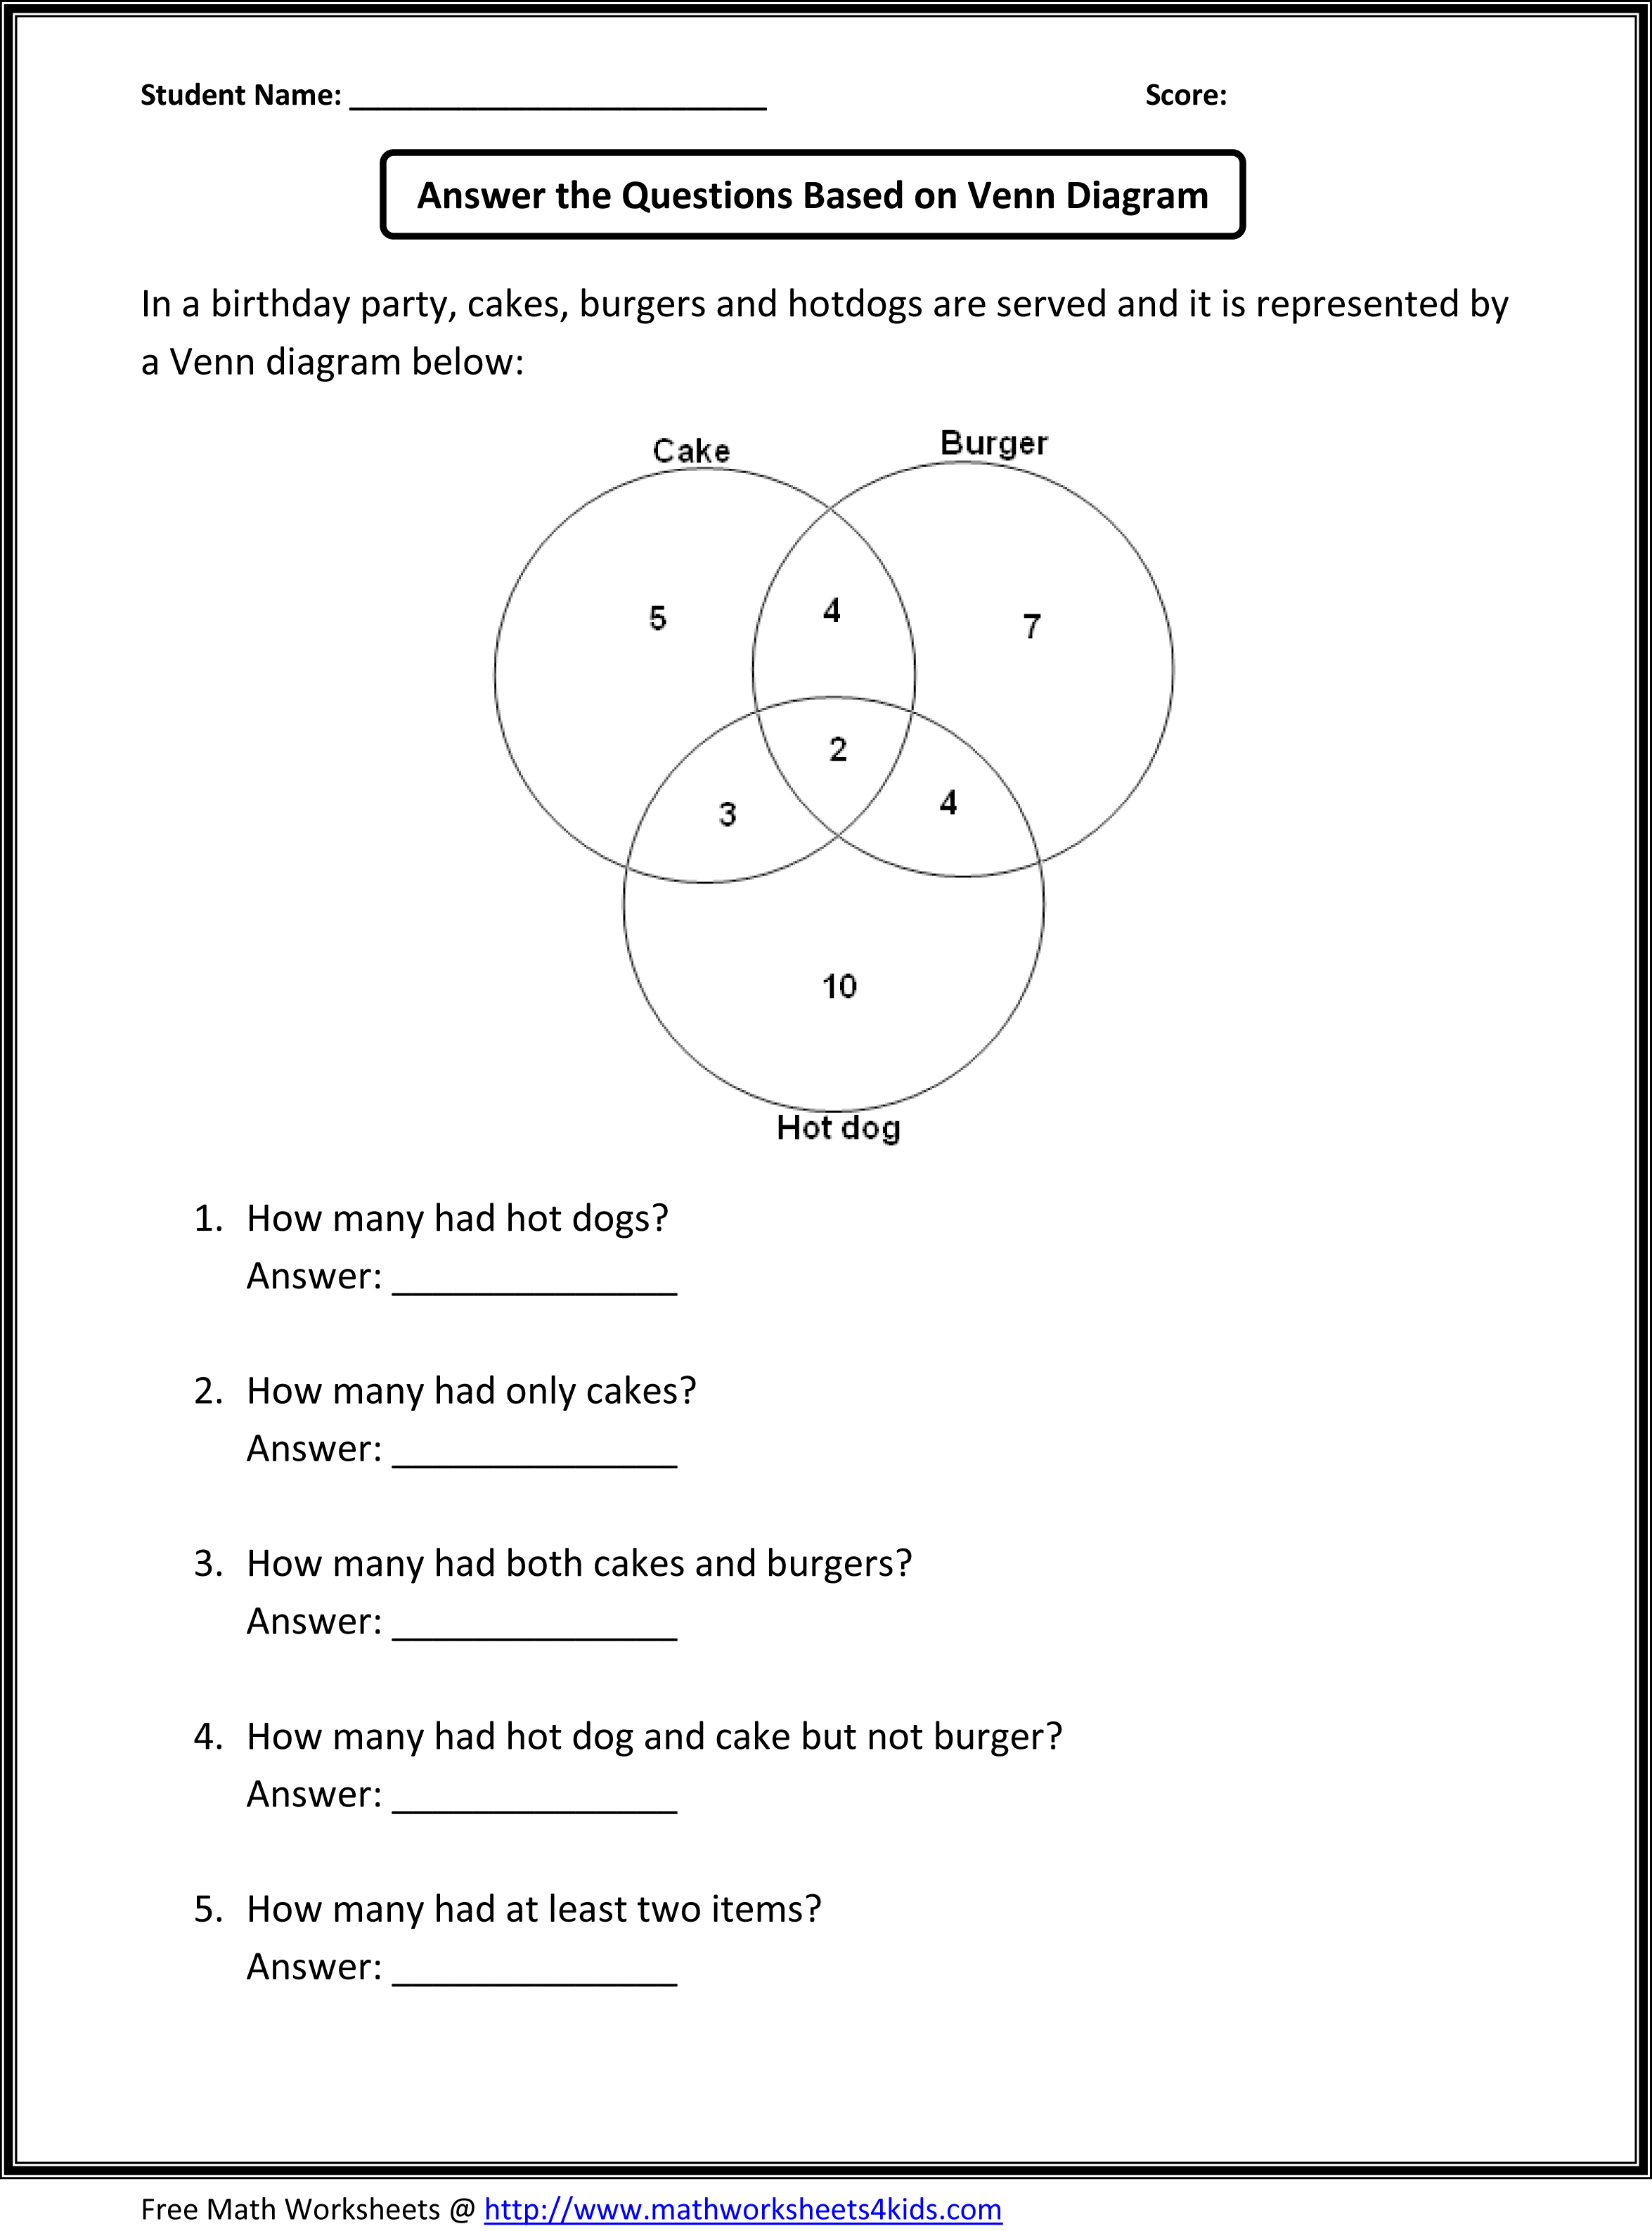 worksheet Common Core Math Worksheets 5th Grade 5th math worksheets grade 618 x 800 jpeg worksheets